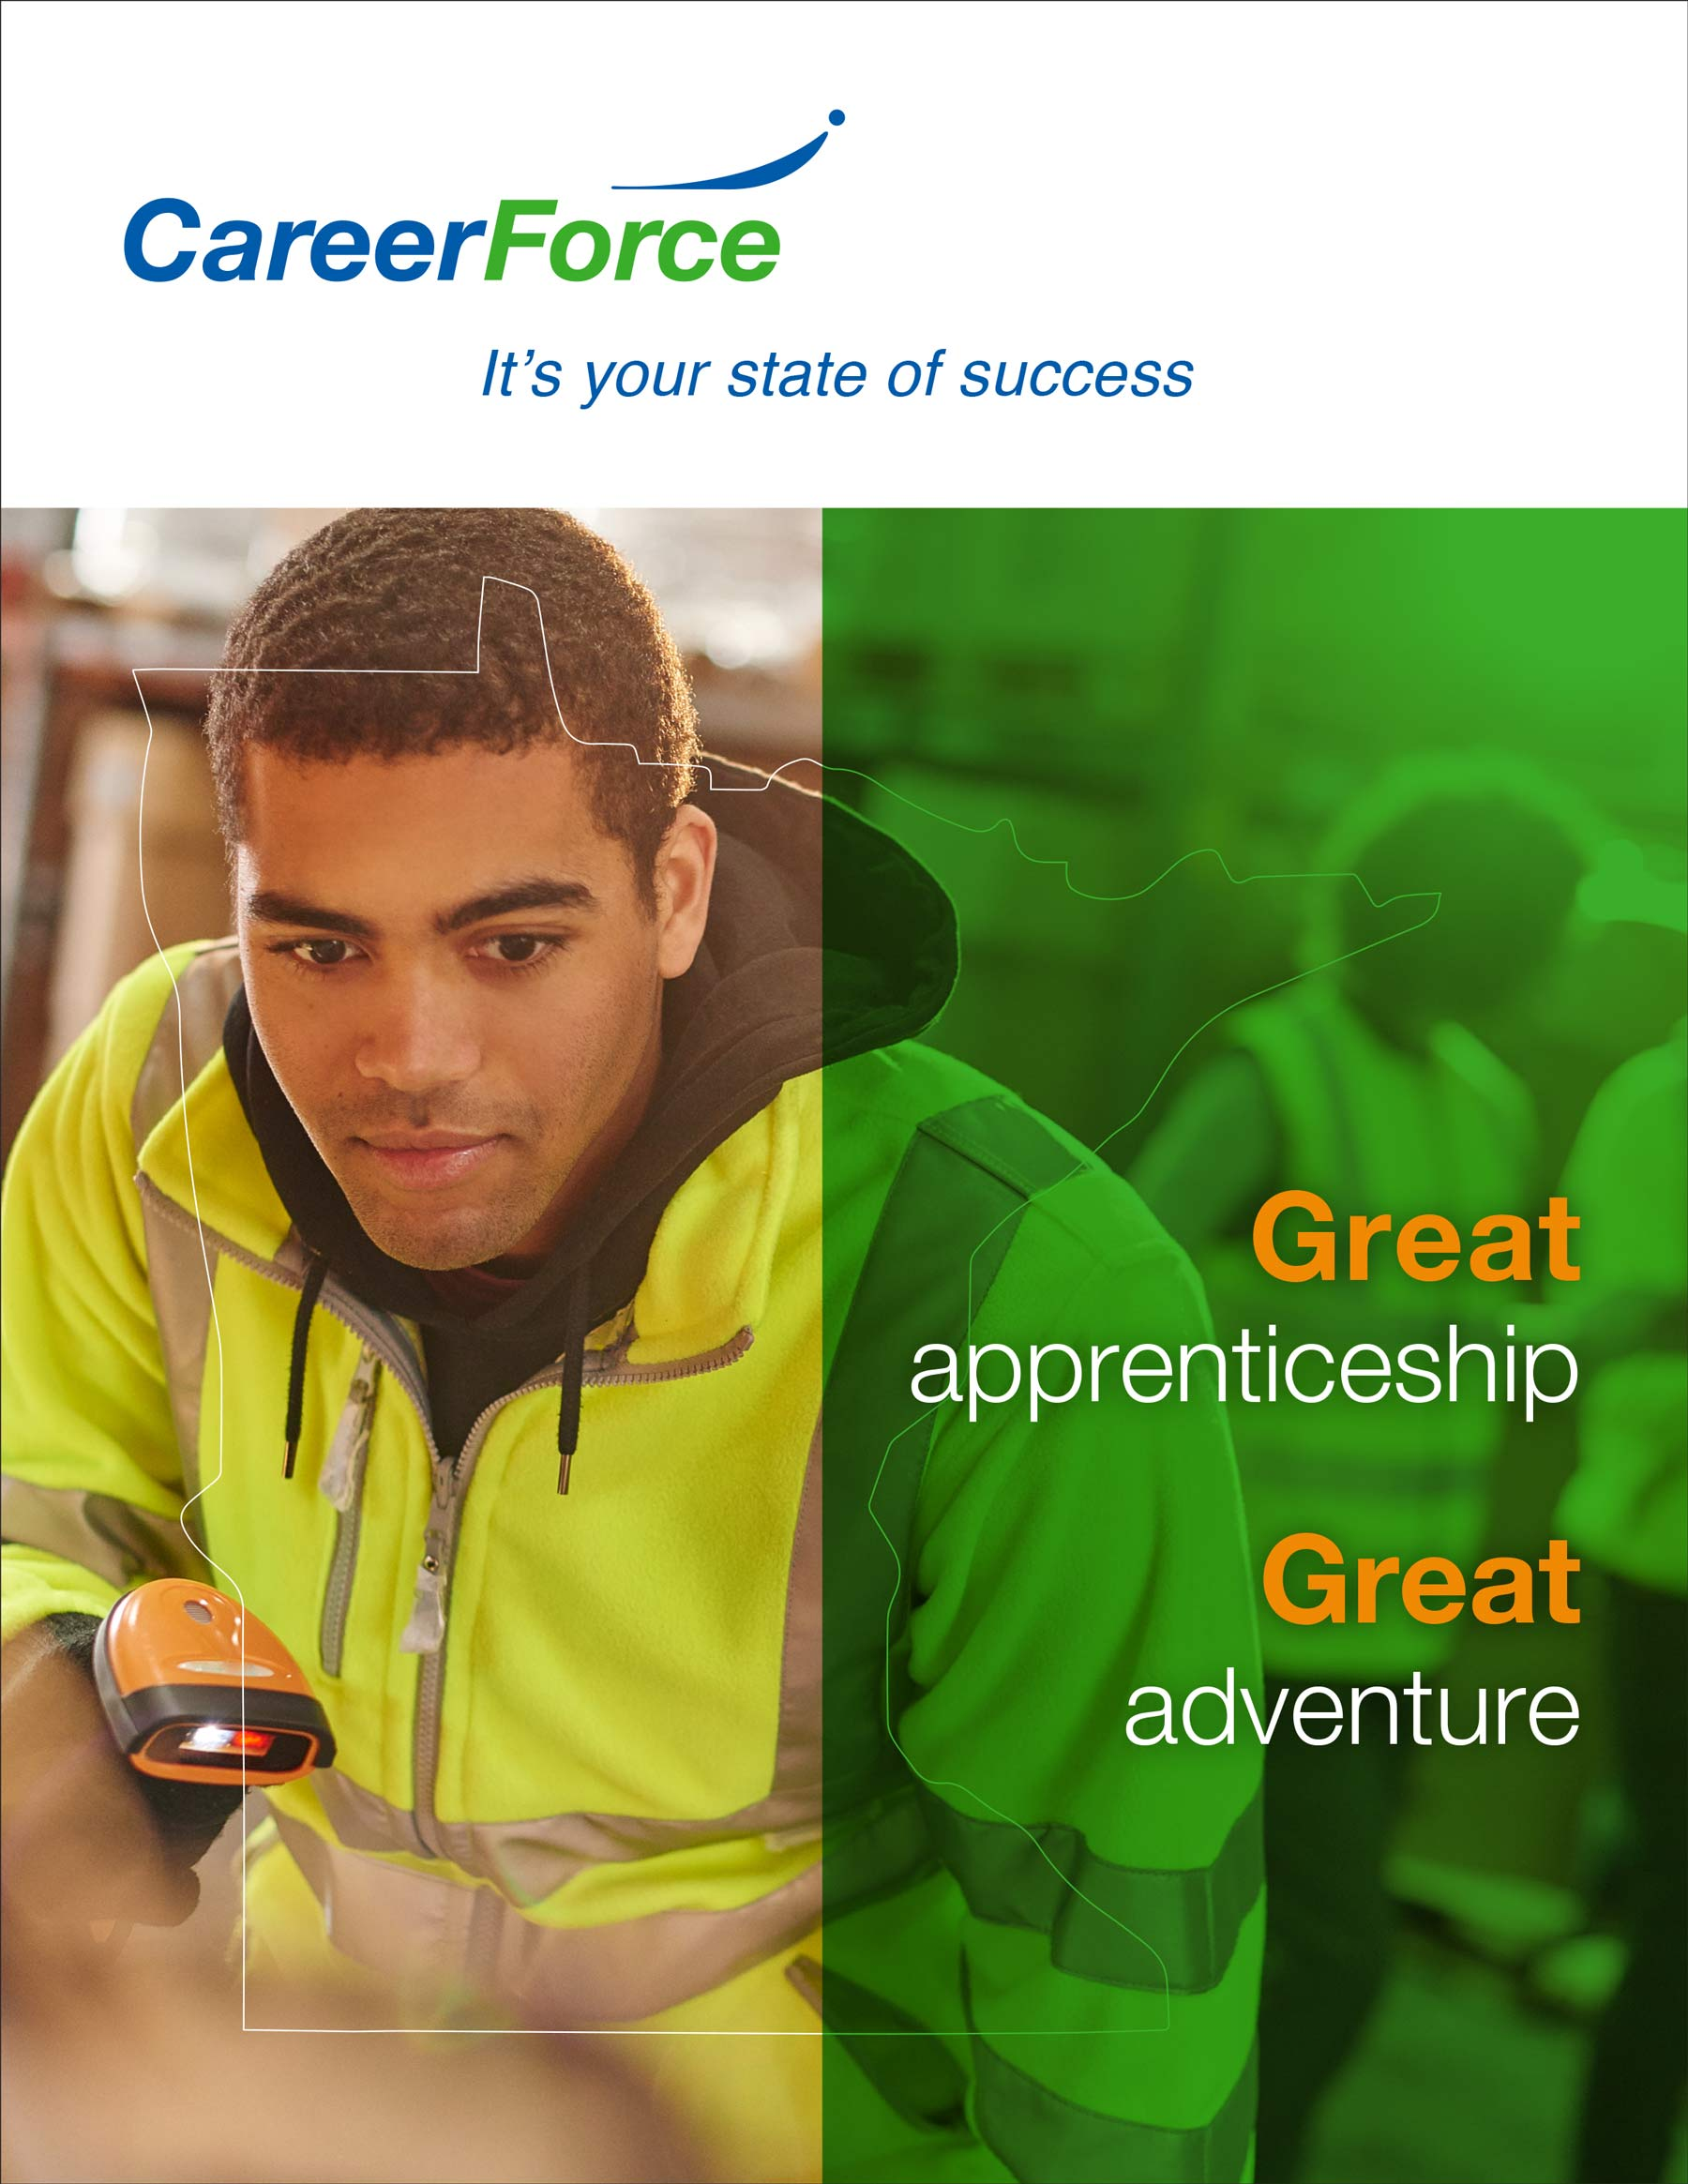 CareerForce poster featuring a warehouse employee with tilte: Great apprenticeship, great adventure.